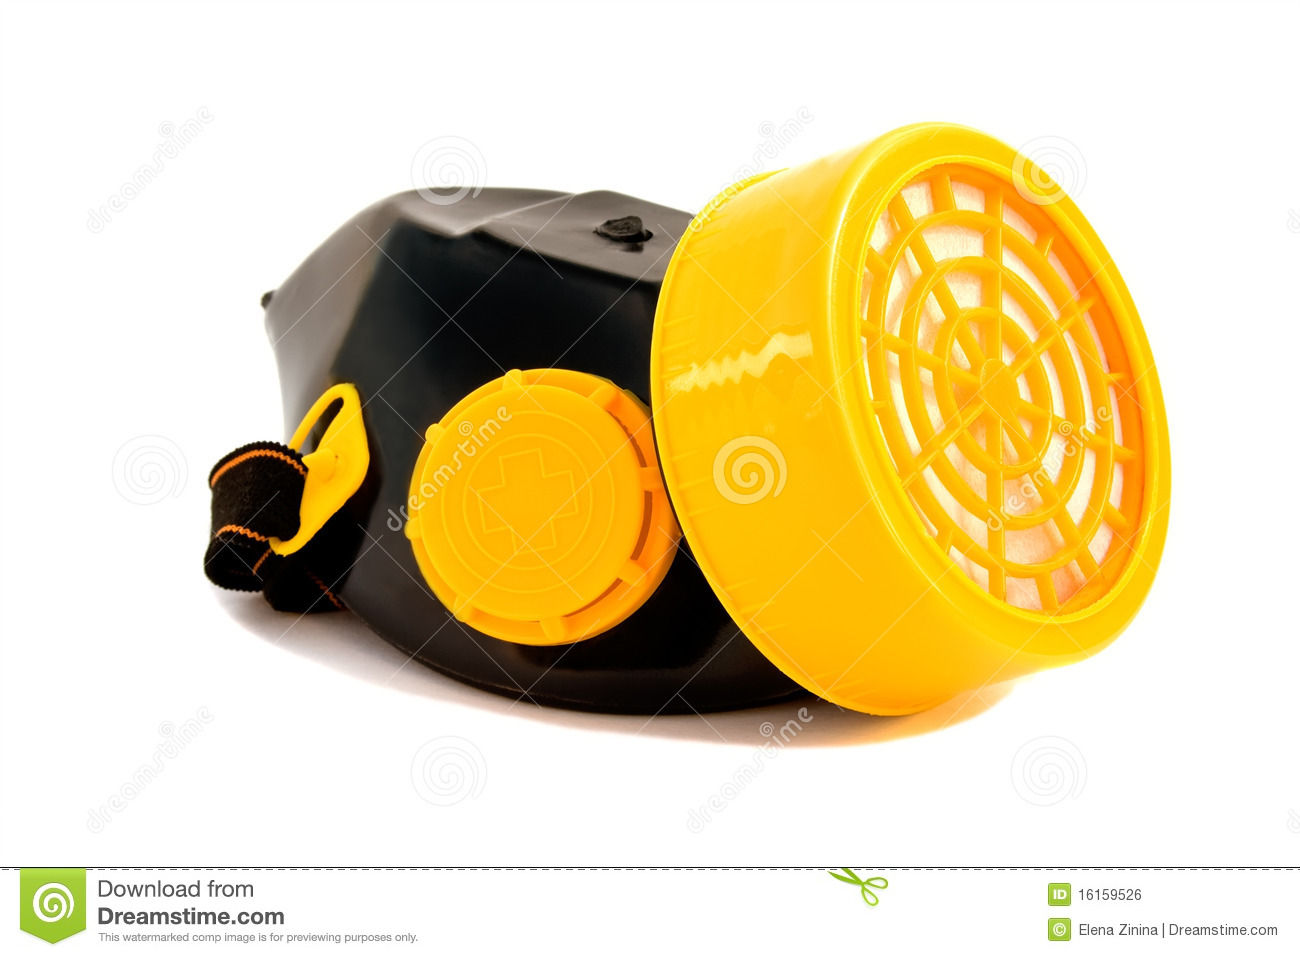 Respirator isolated on a white background